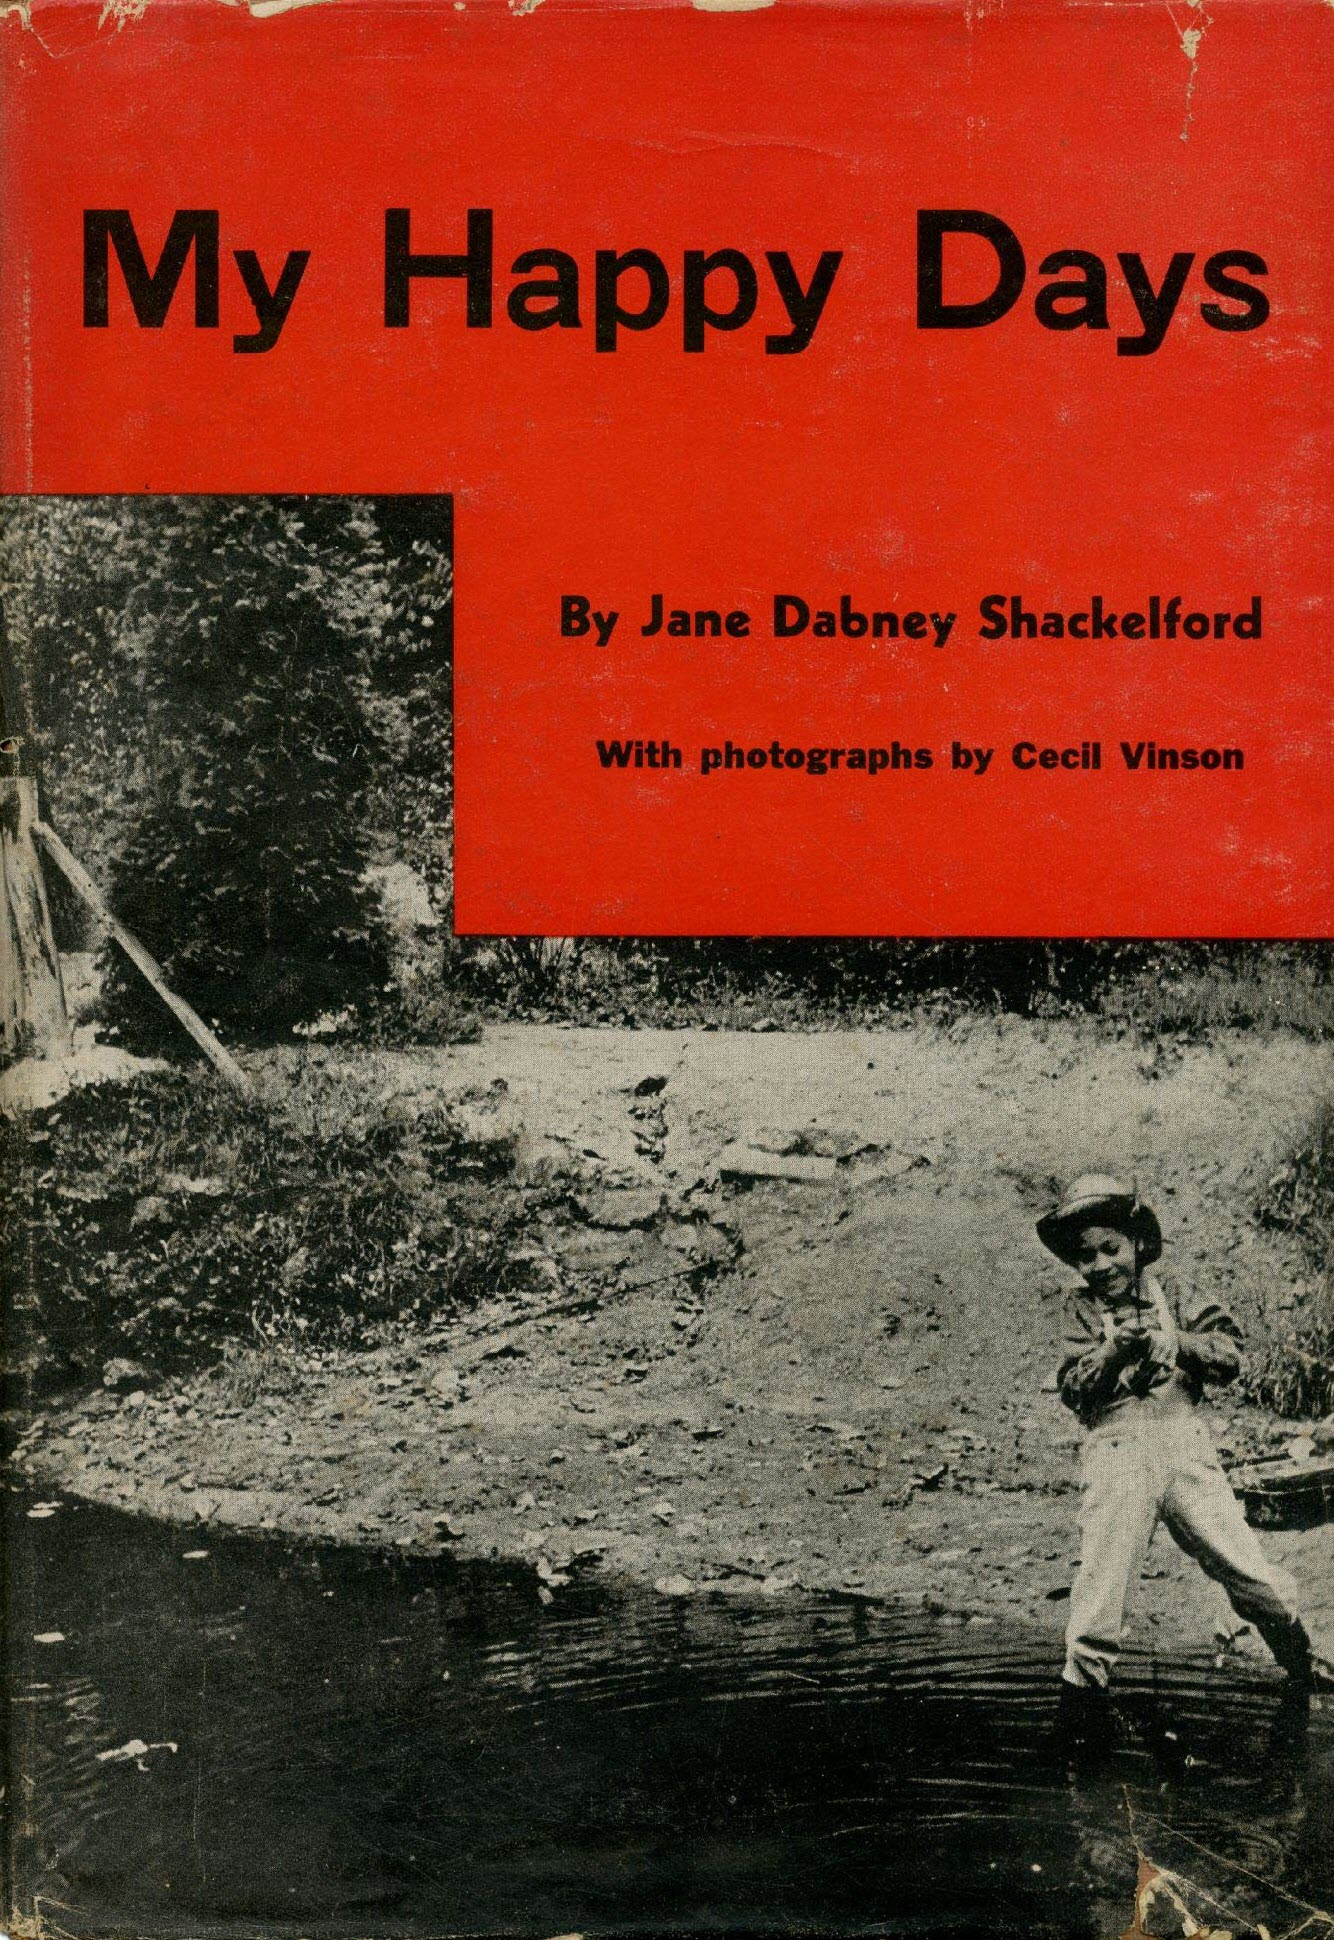 The cover of My Happy Days includes a black & white photo of a young boy fishing in a creek.